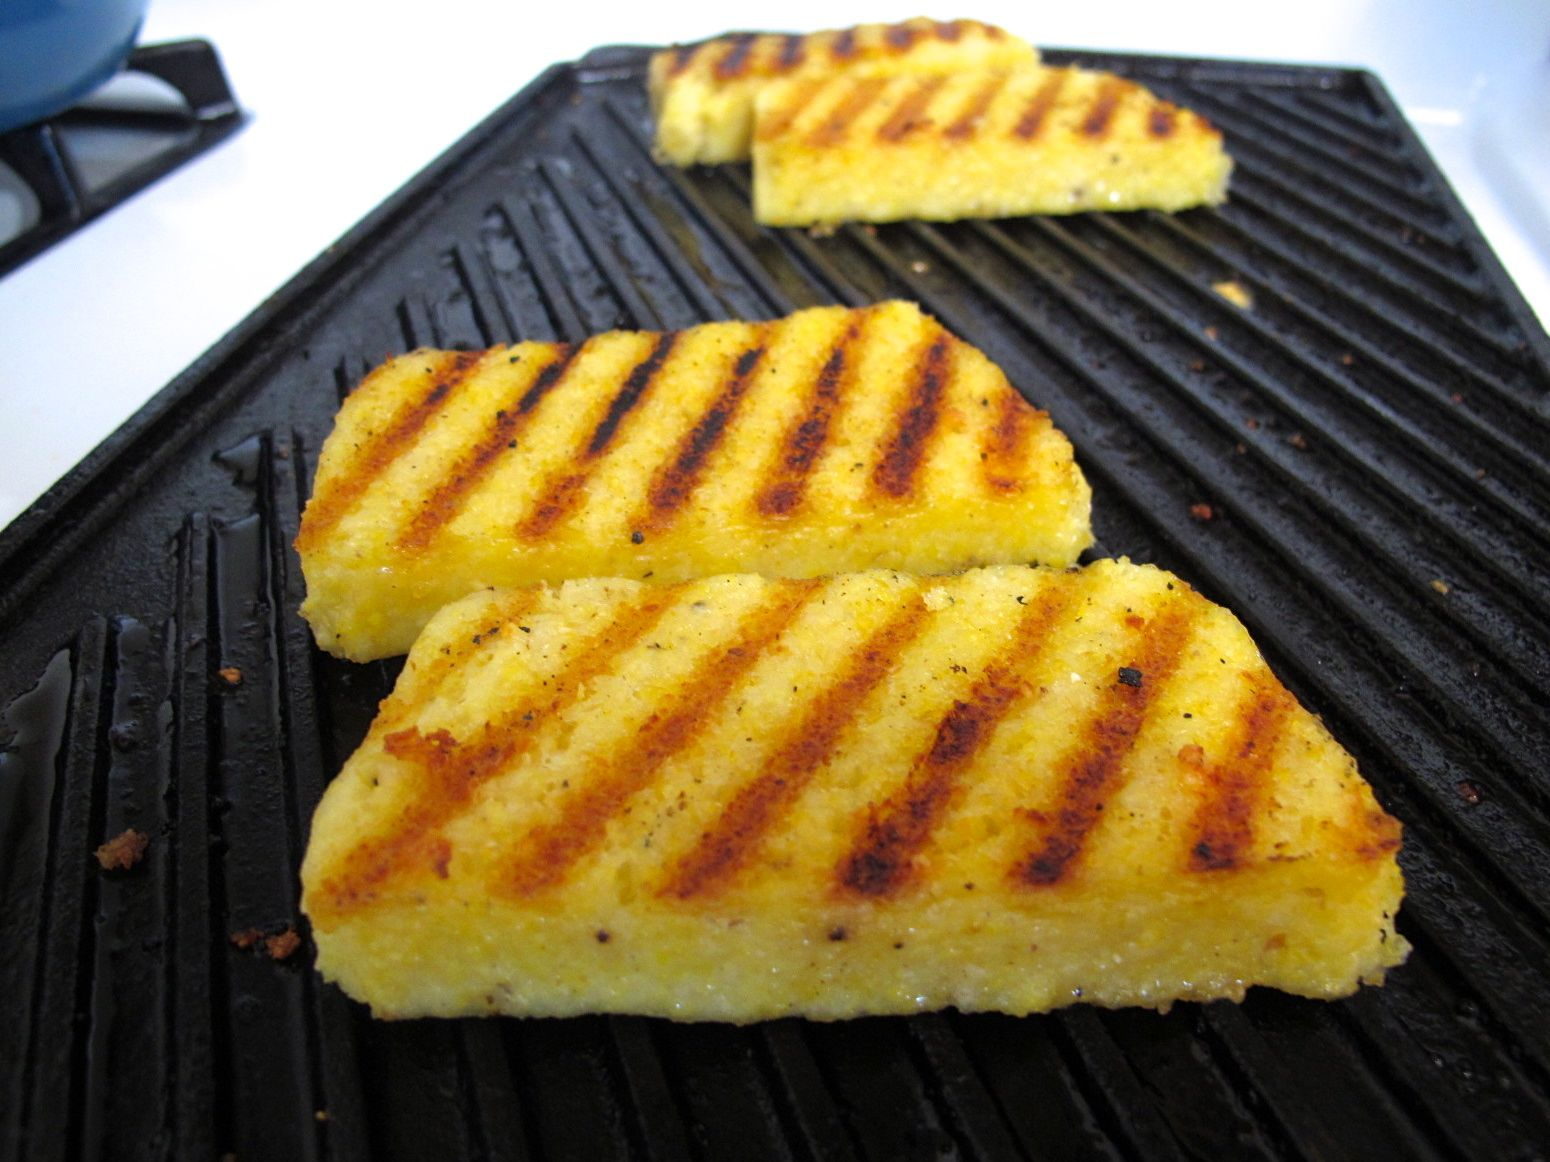 pan grilled chive polenta they re polenta cut into grilled polenta ...